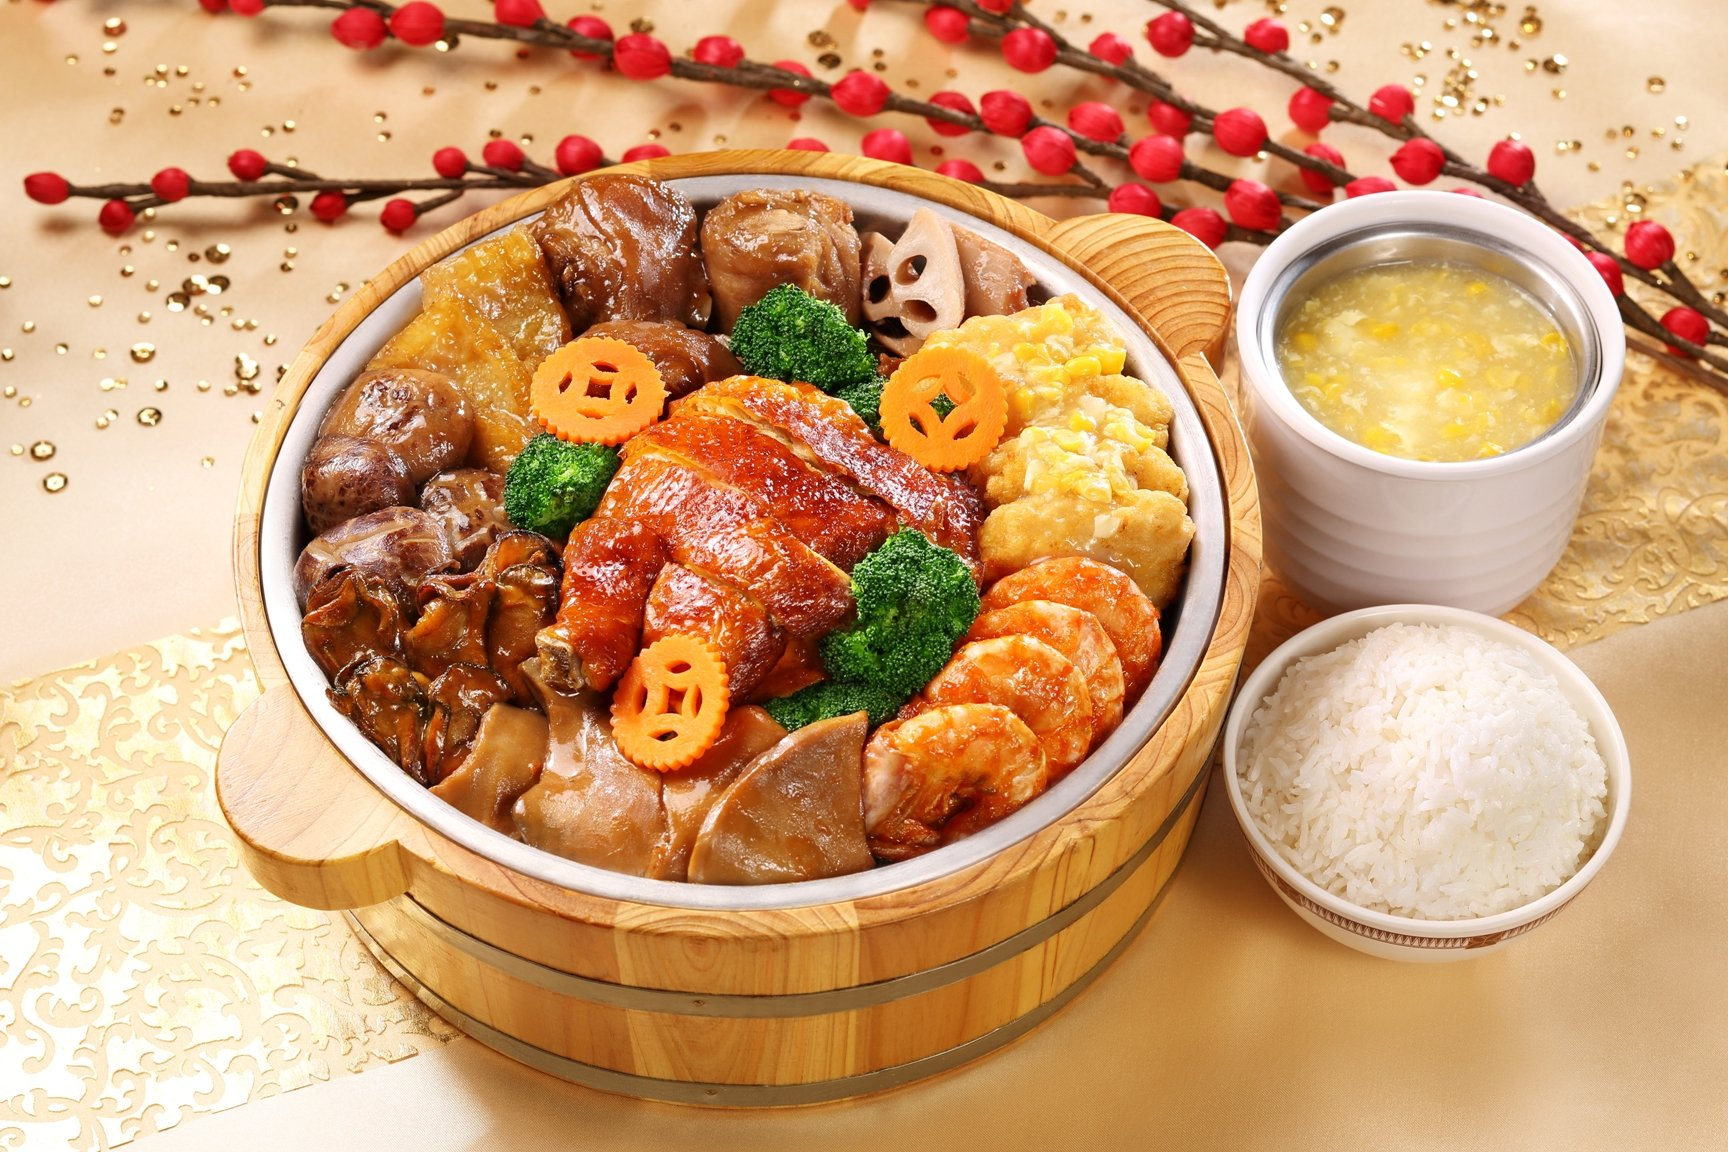 Hong Kong Disneyland_Adventureland_River View Cafe_Chinese New Year Treasure in Pot Set Menu  (1)_hh